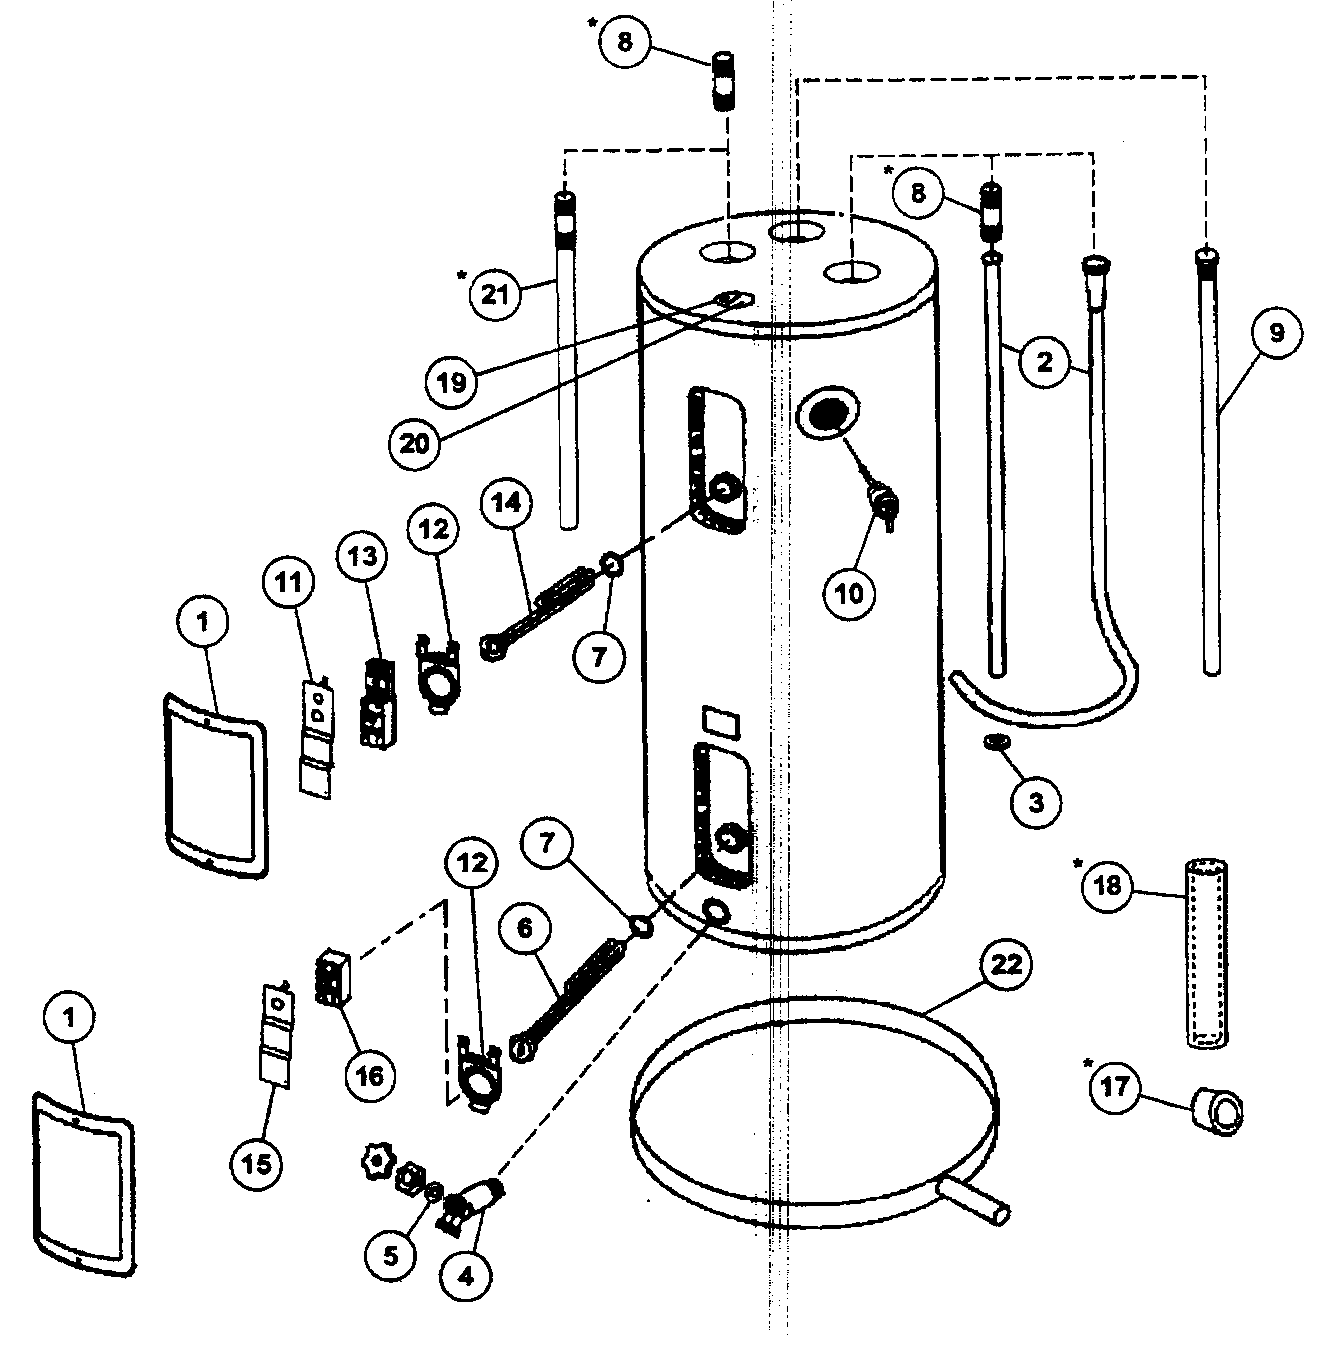 Camco Water Heater Wiring Diagram Auto Electrical 1996 Buick Regal Cars Chat Thermostat Hot